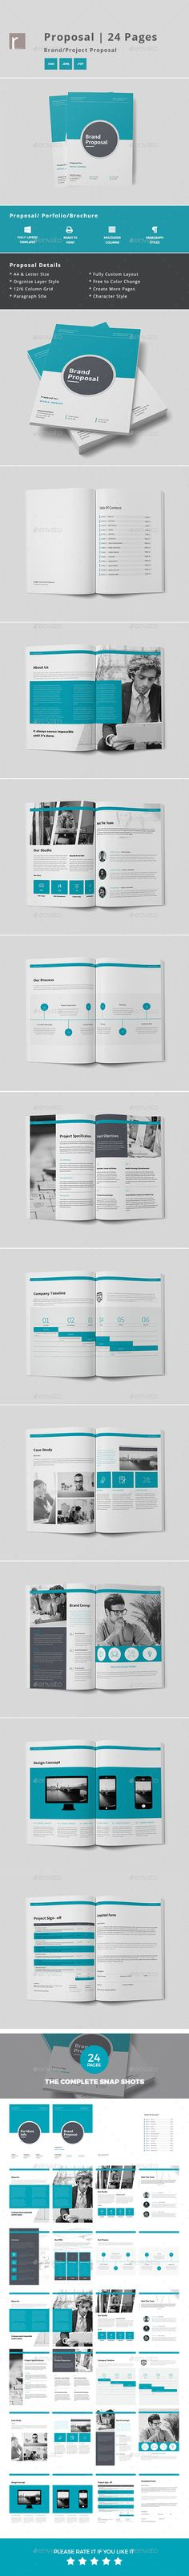 Business Infographic  Proposal Template Indesign Indd  Pages A